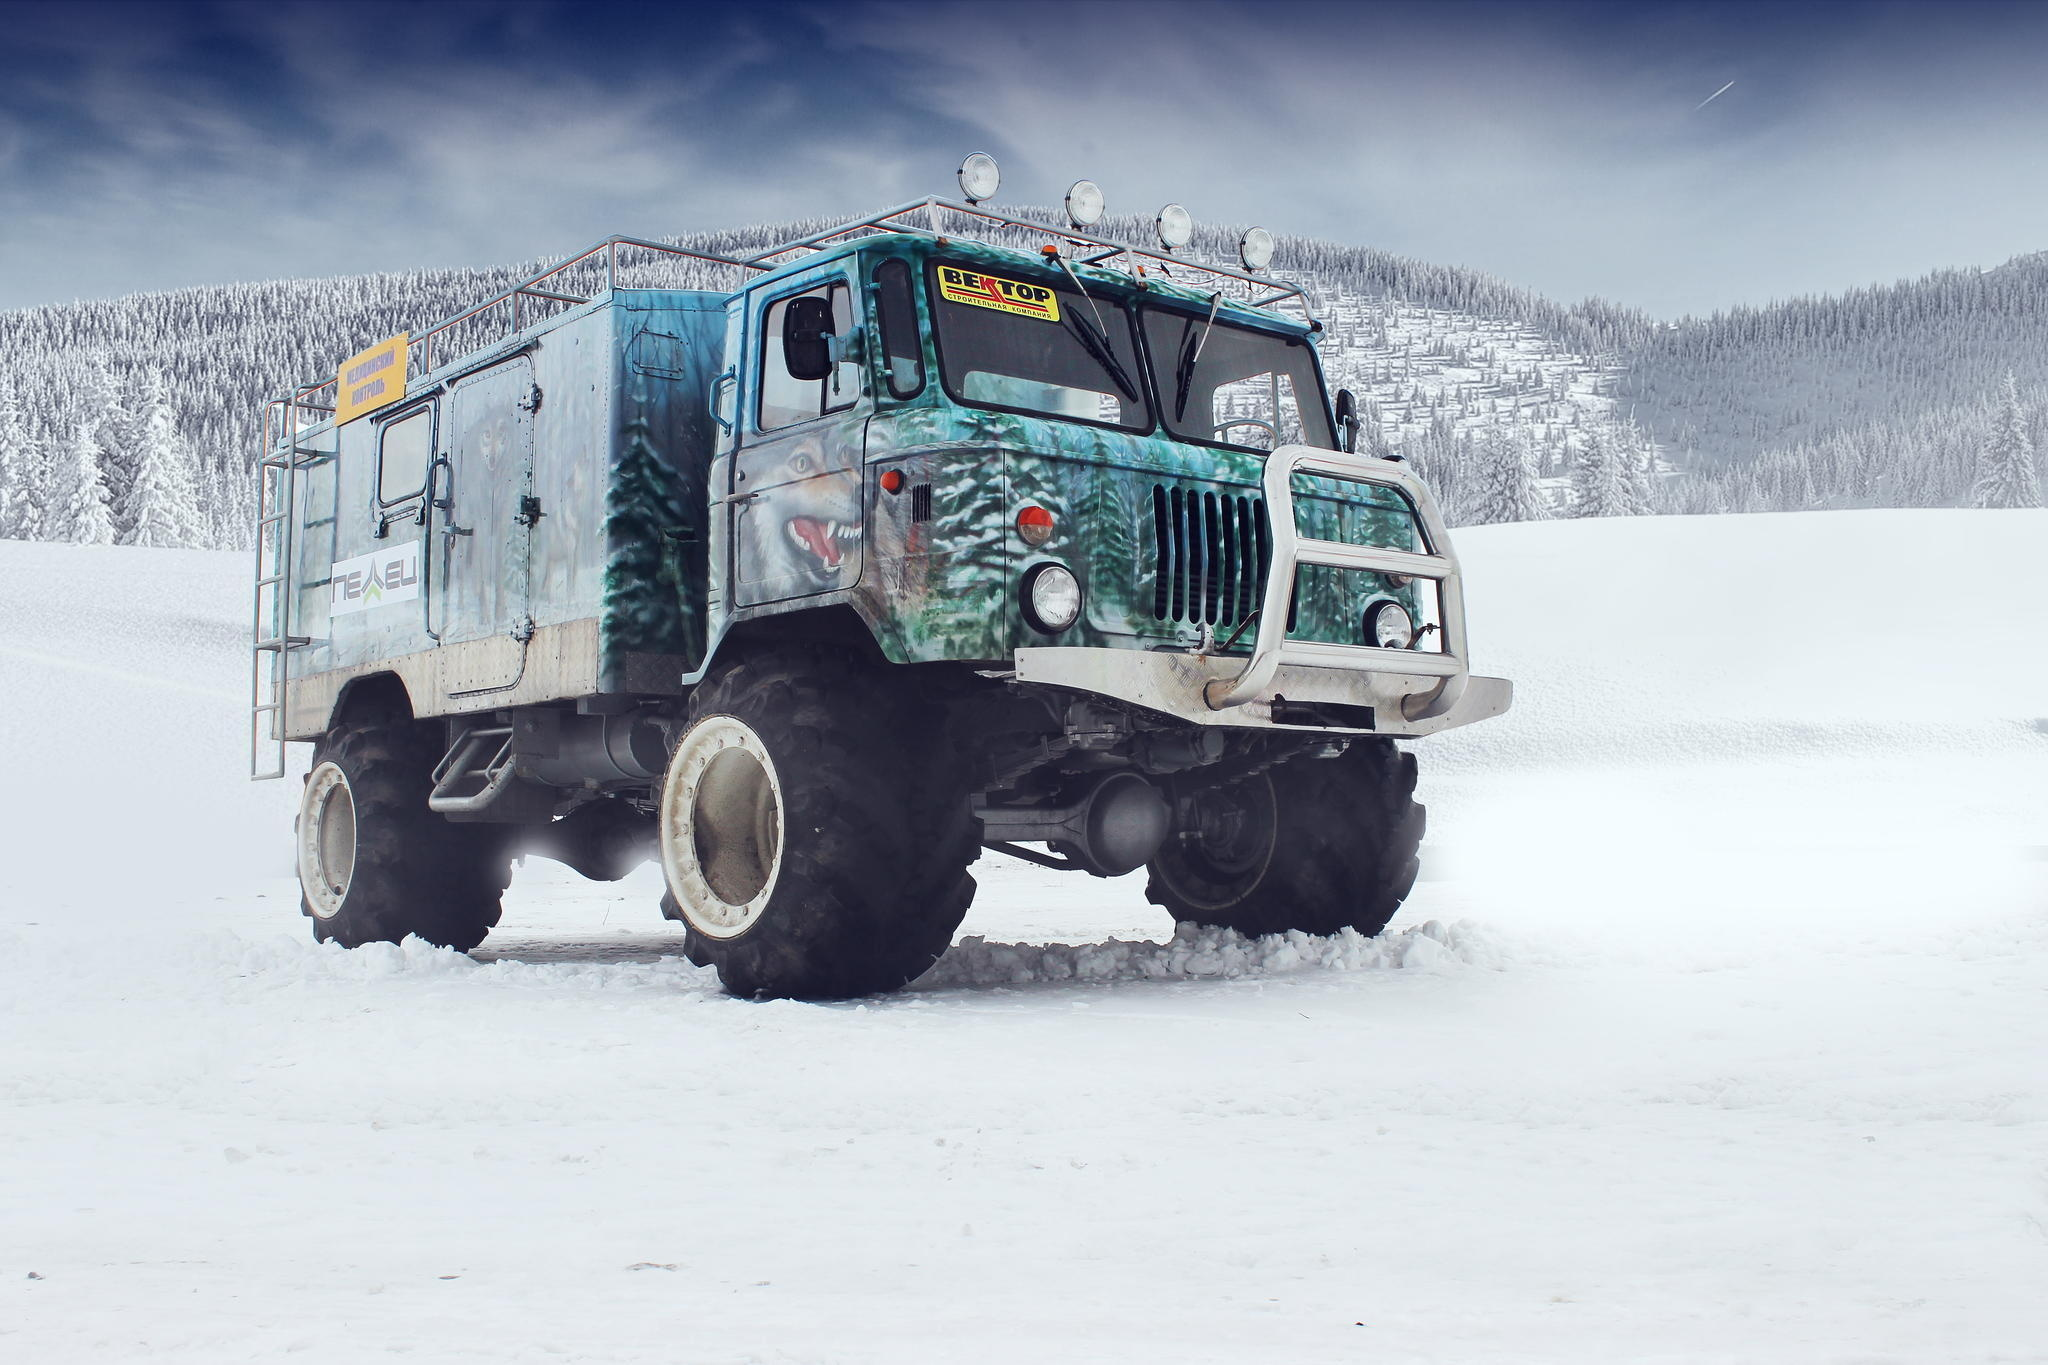 Gaz 66 Off Road Tuning Airbrush   Stock Photos Images HD 2048x1365